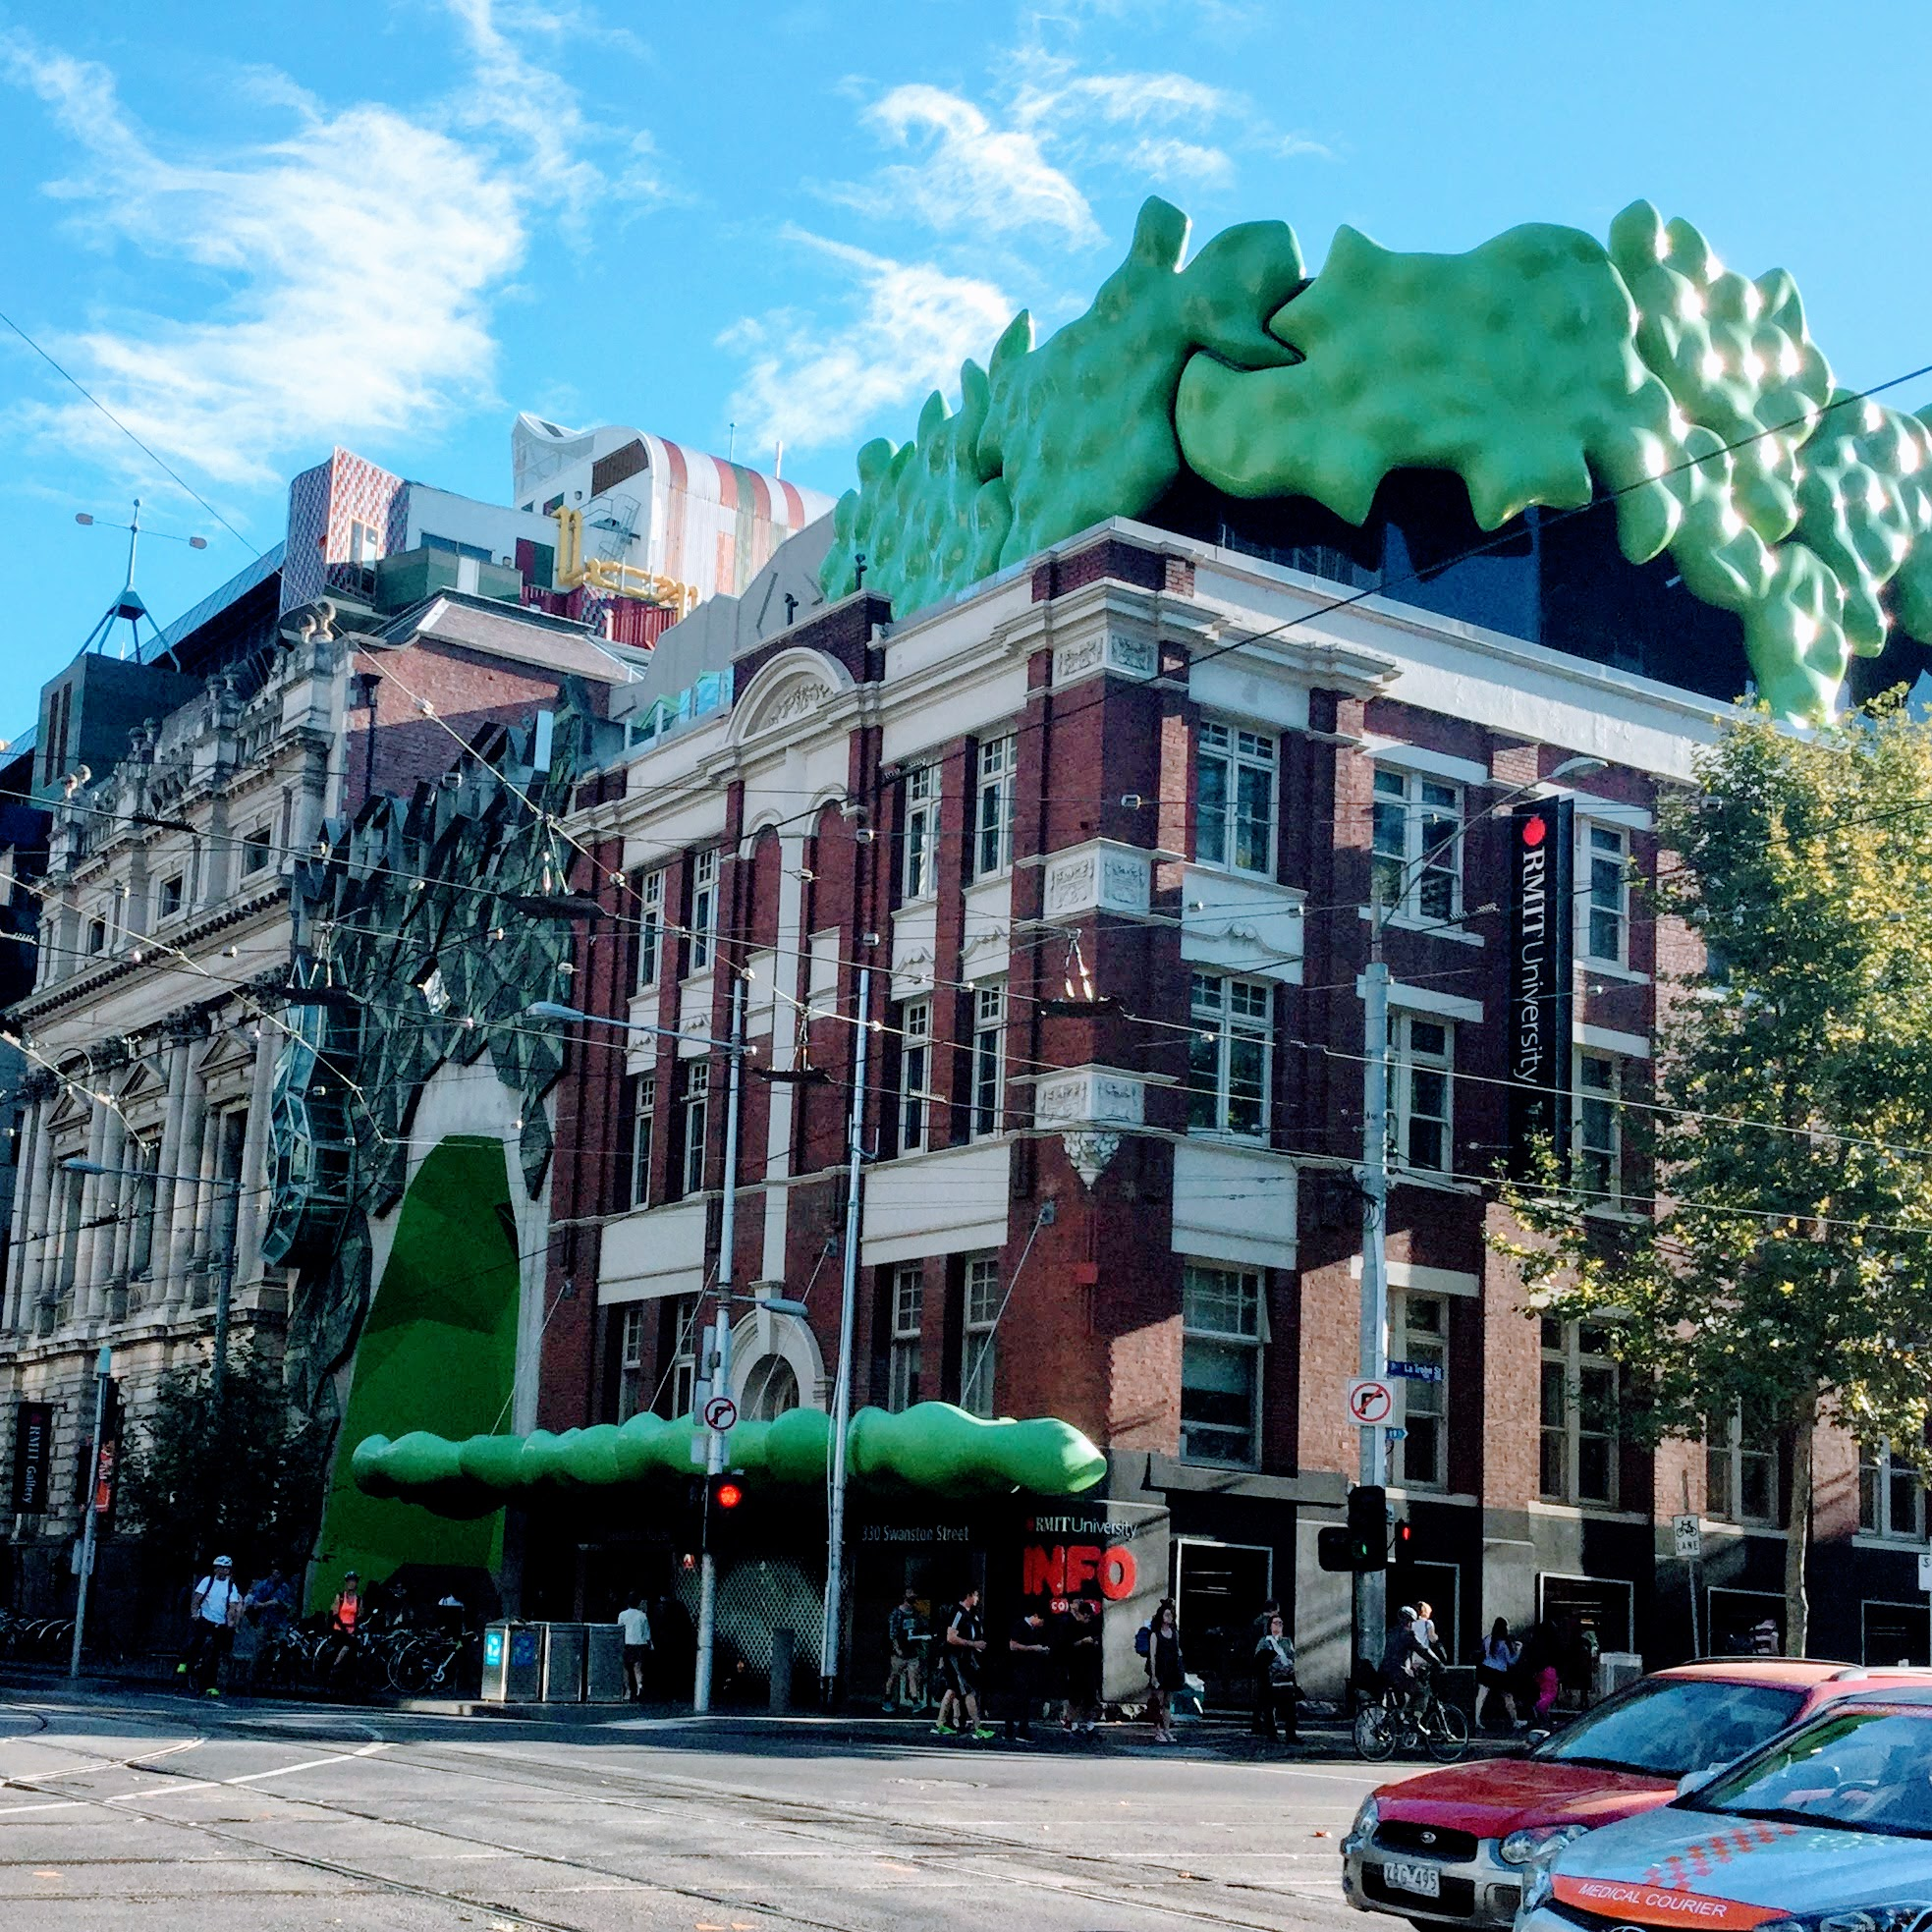 The Green Brain at RMIT where I presented the findings of the research.